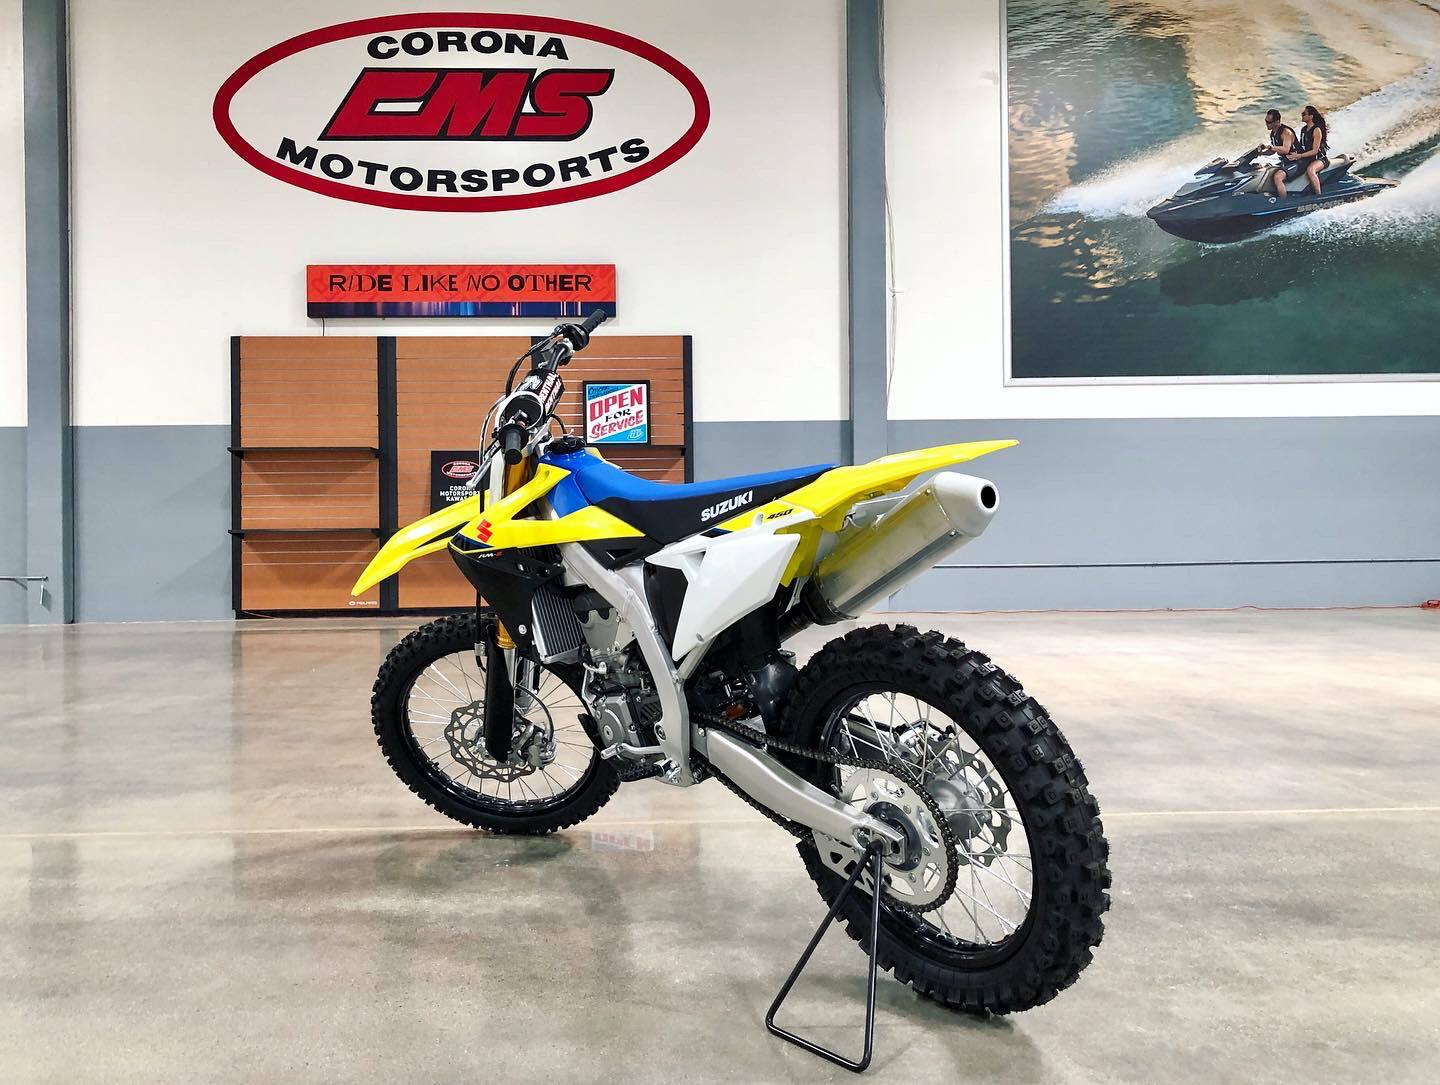 2020 Suzuki RM-Z450 in Corona, California - Photo 3